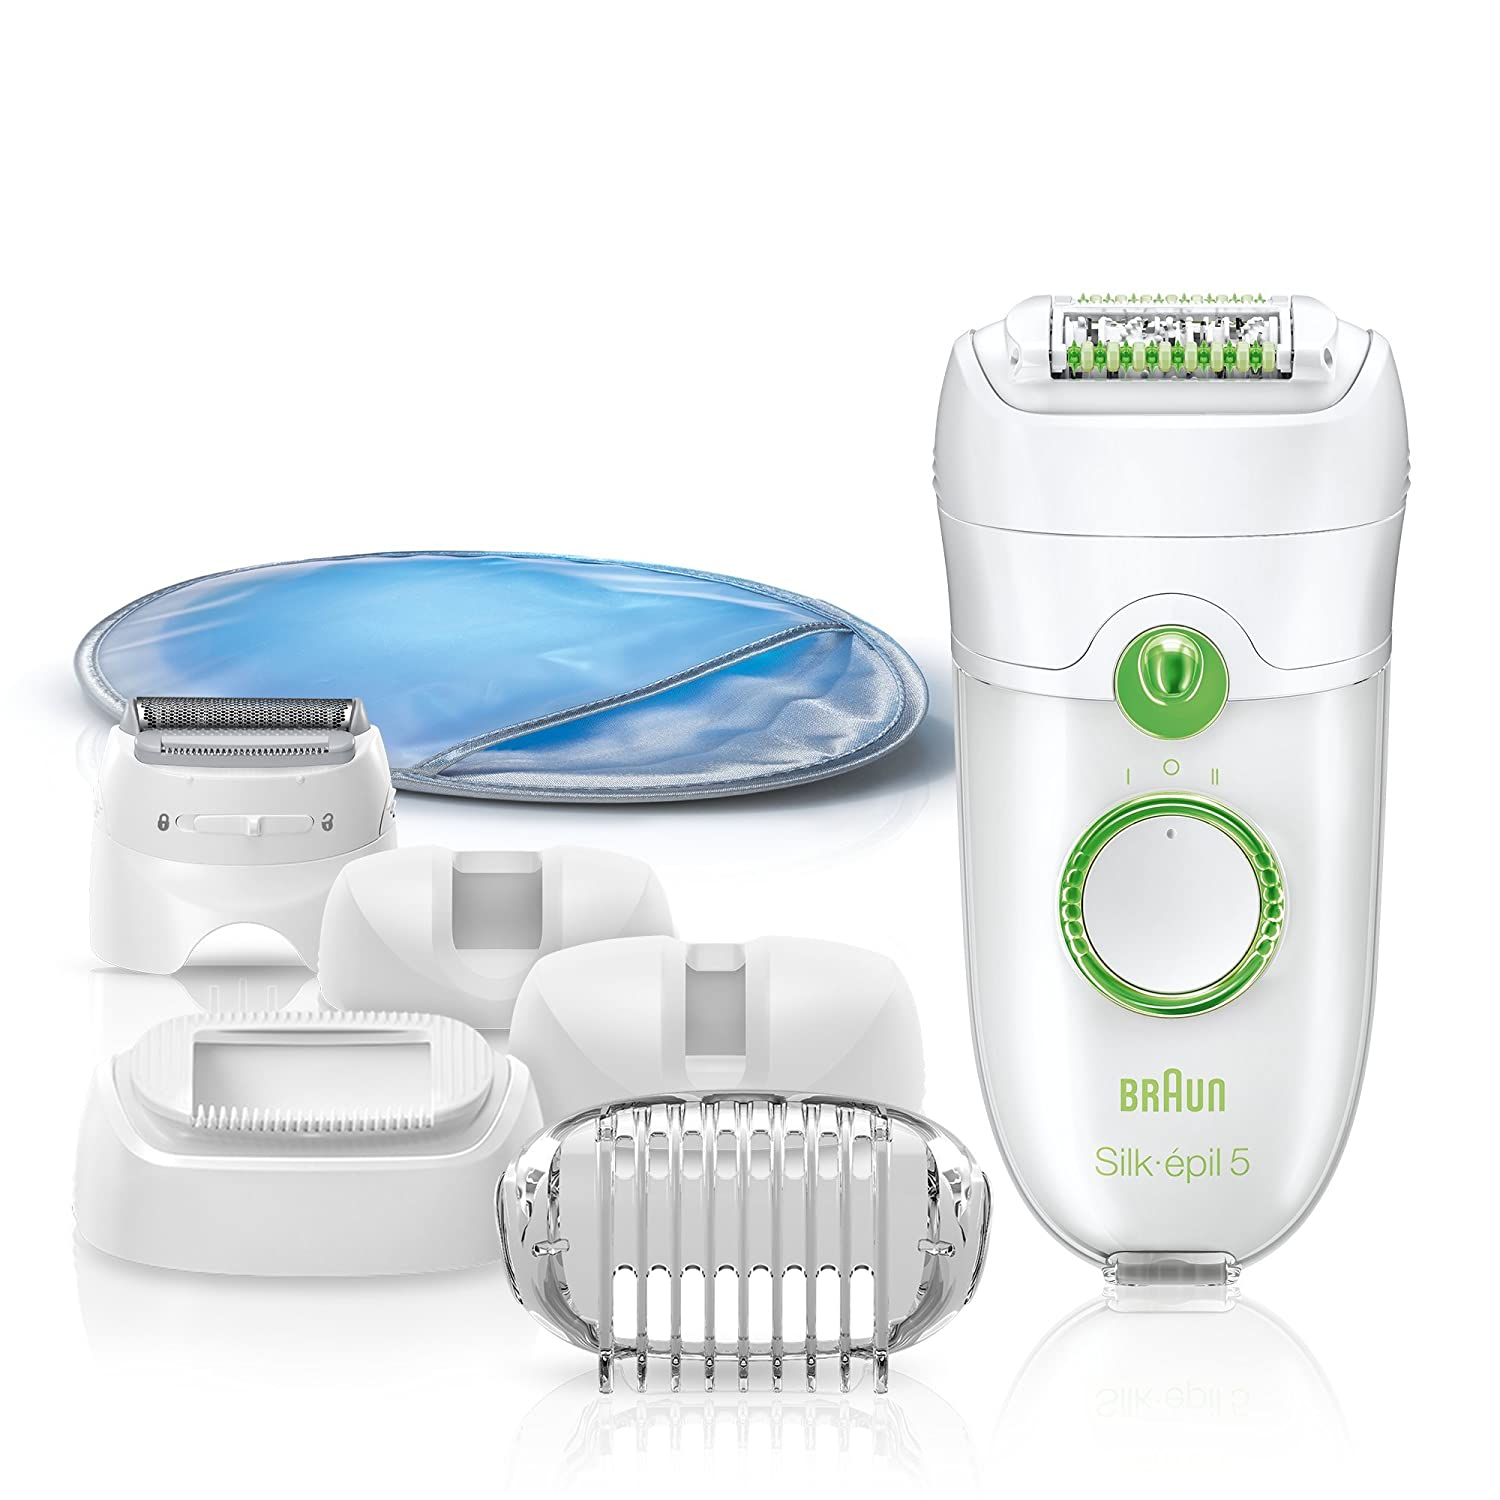 Epilators And Accessories Philips Epilator Bre630 Electric Lady Shaver Shaving Wet Dry Dual Stripper